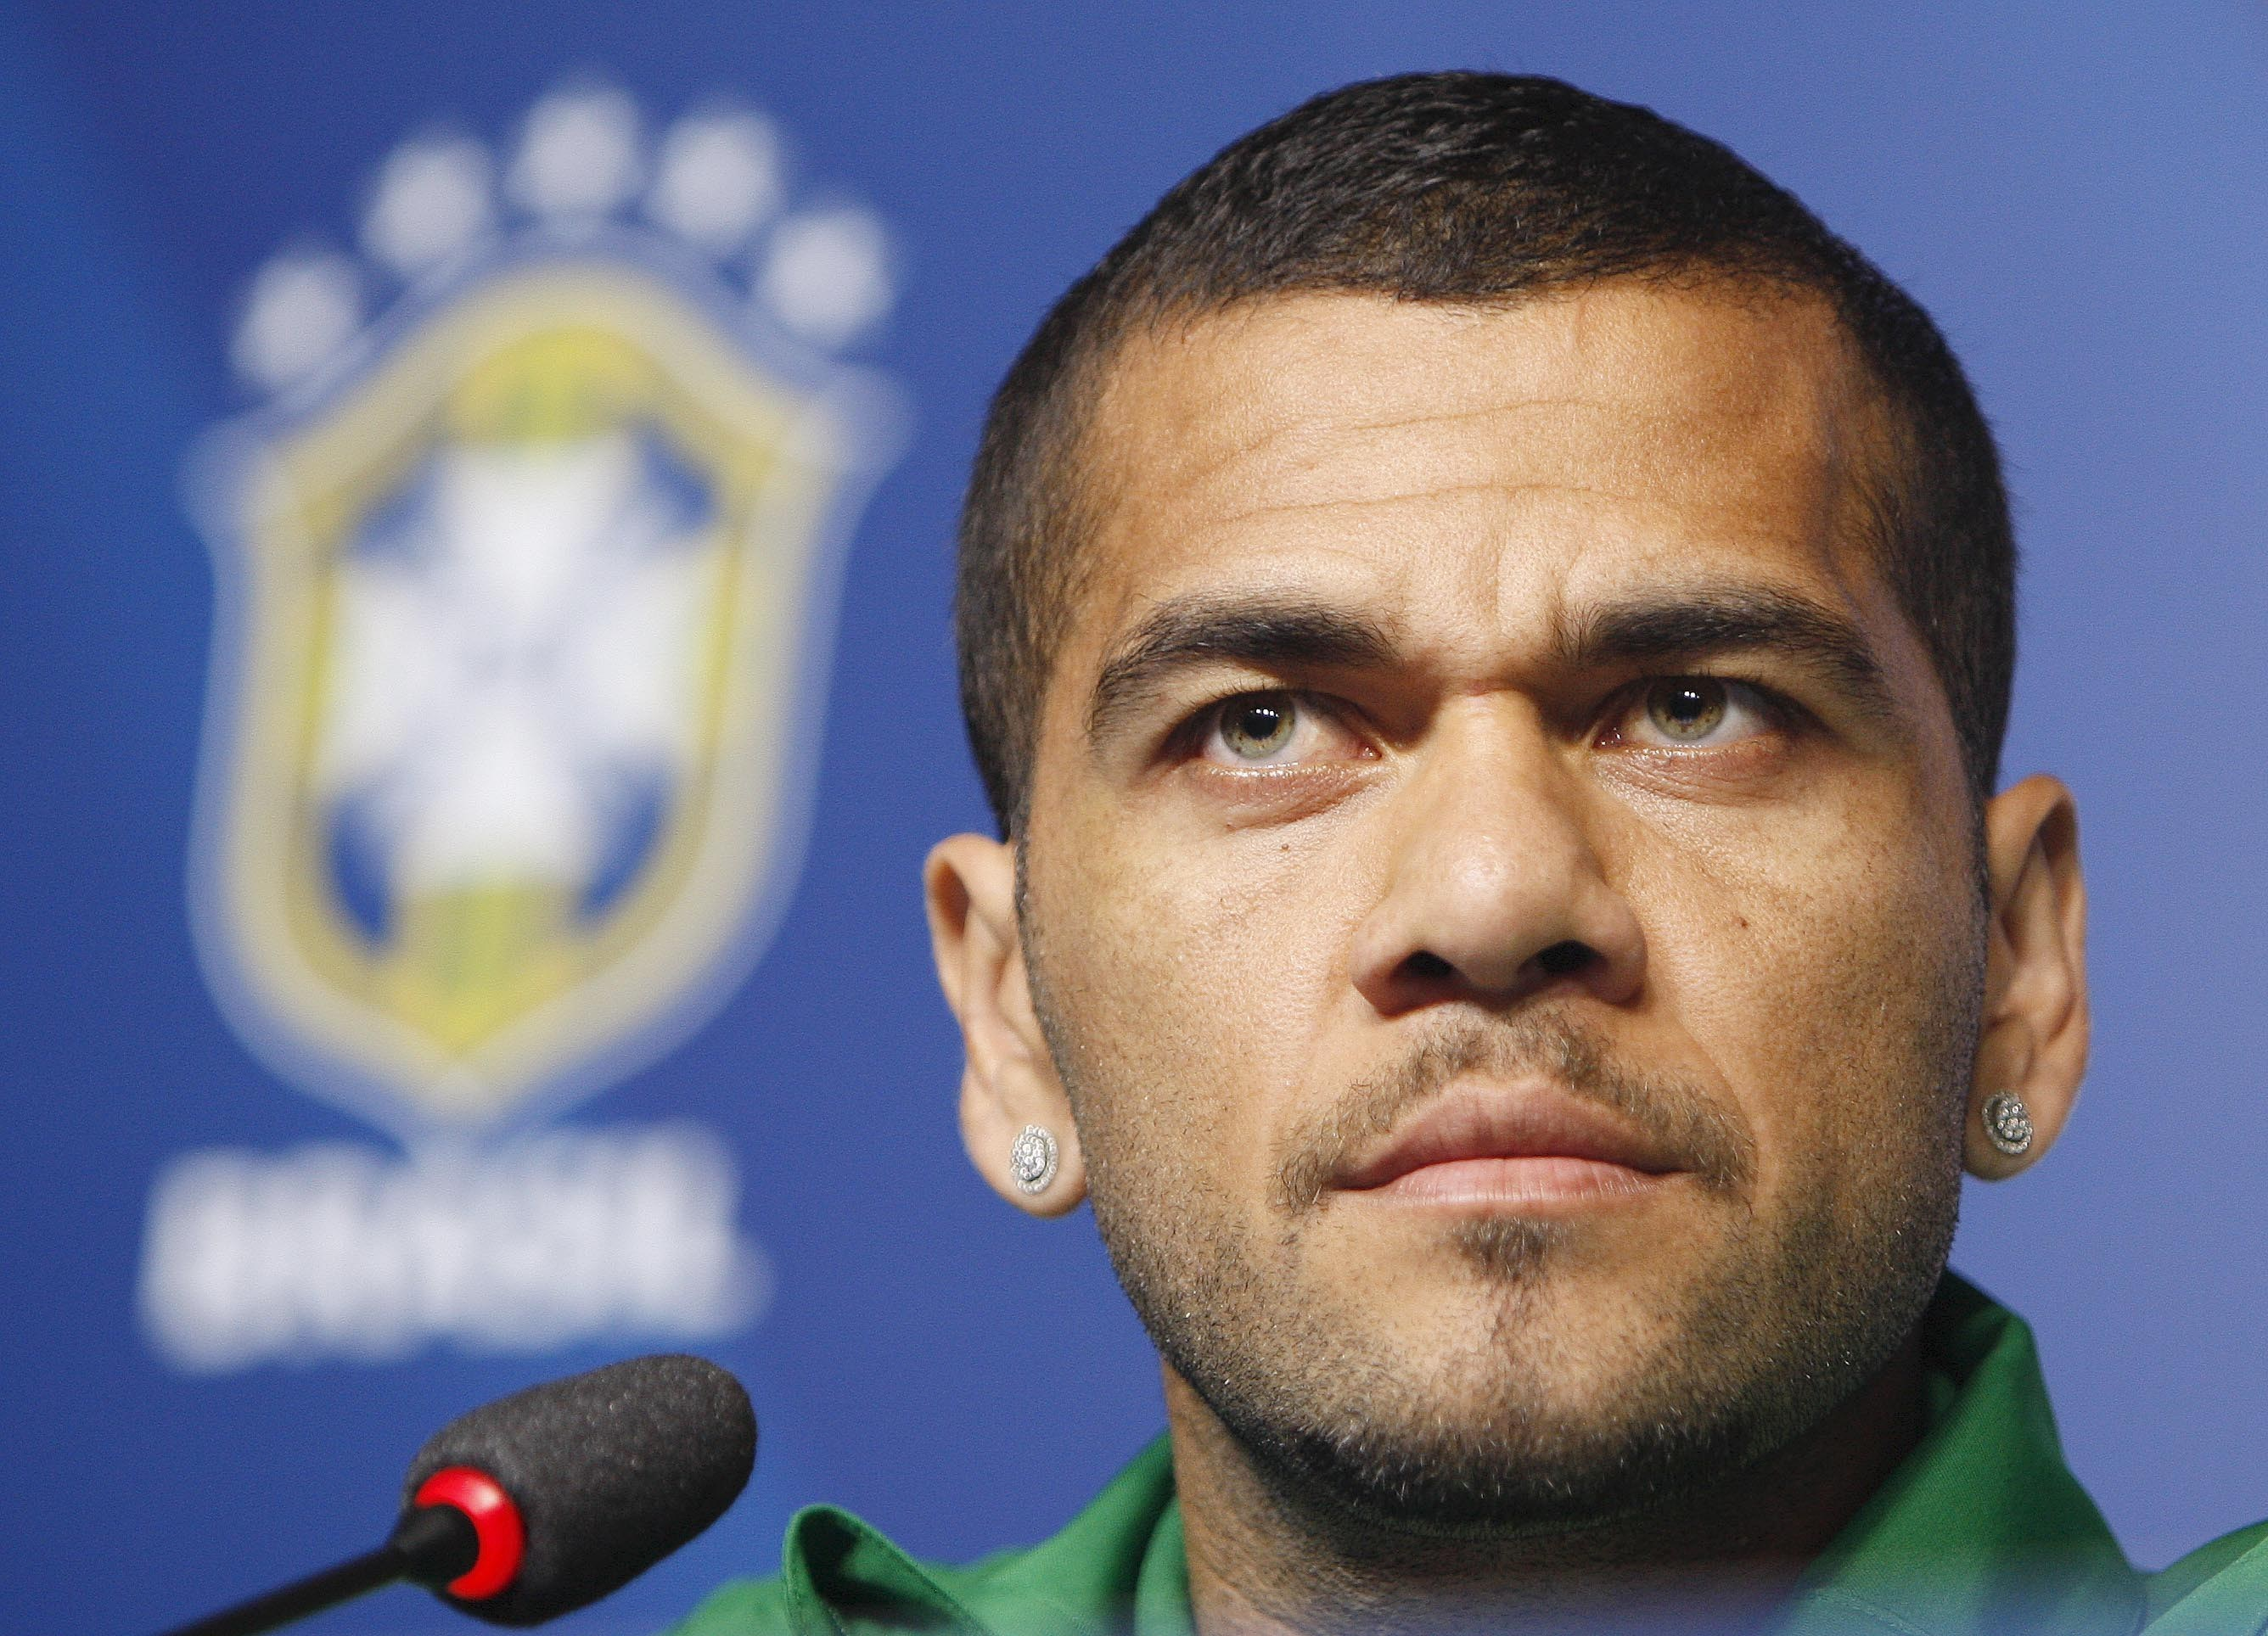 Daniel Alves | Known people - famous people news and ...